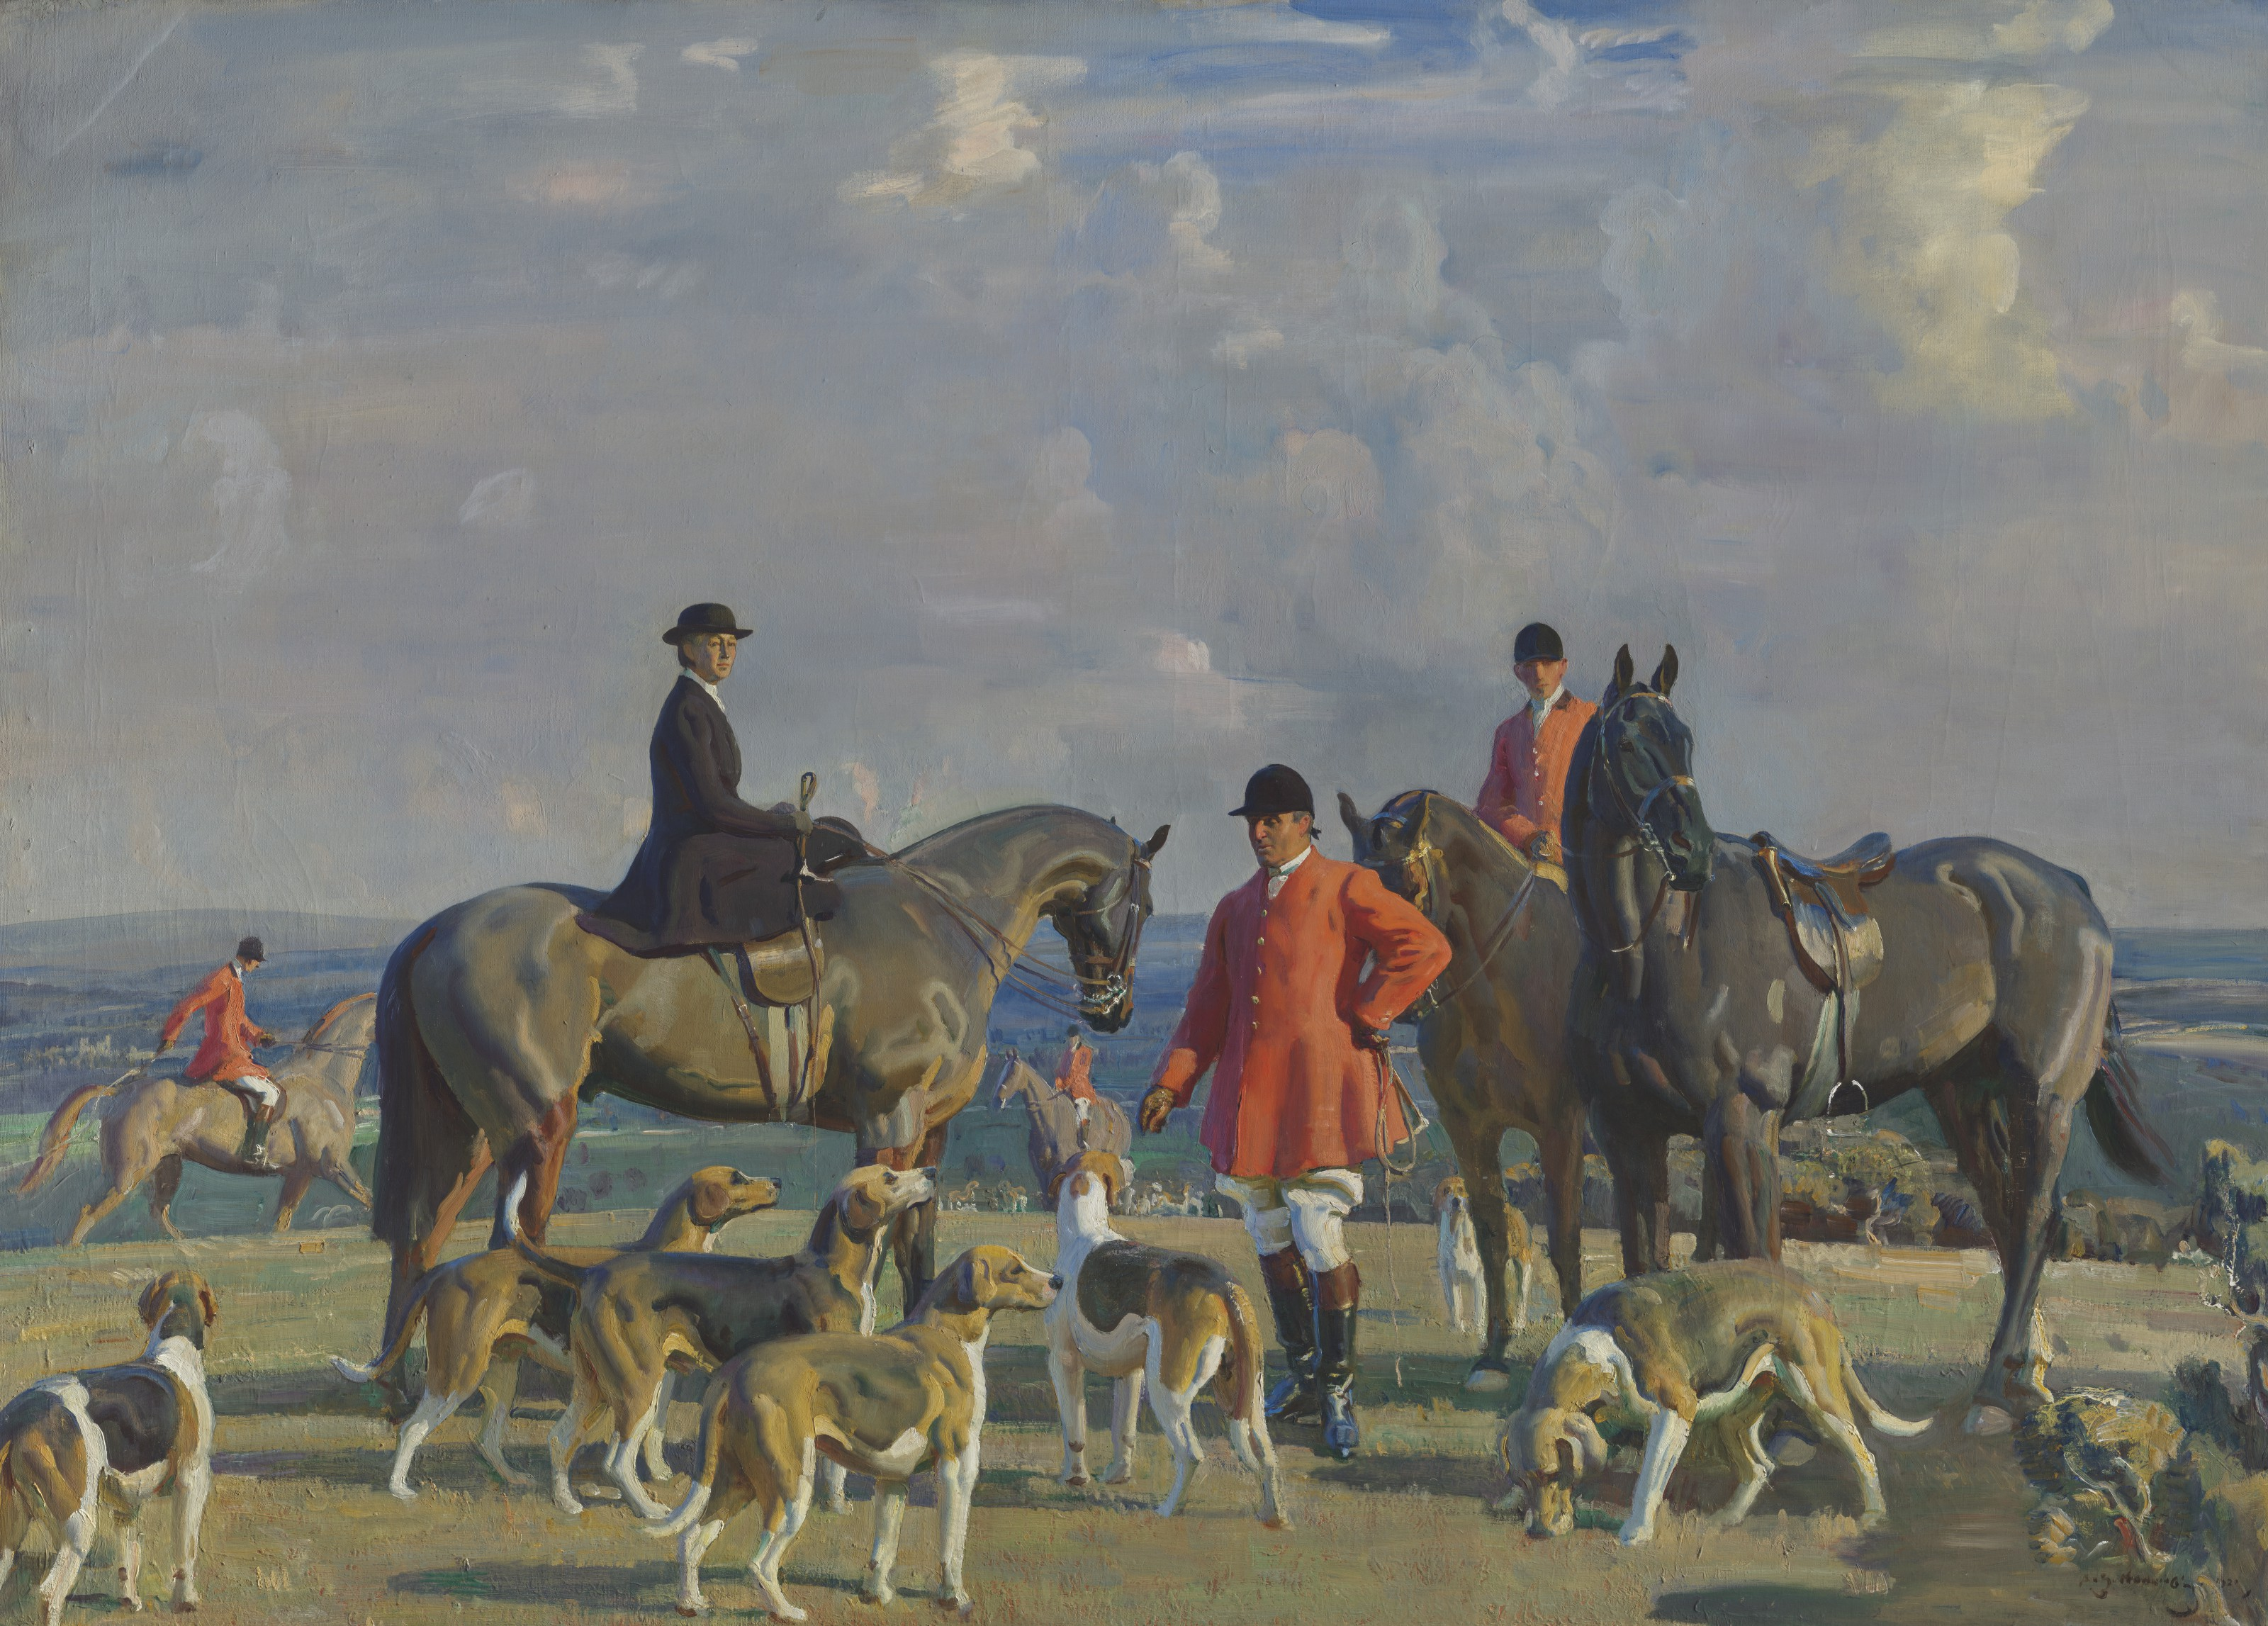 Sir Alfred James Munnings, P.R.A., R.W.S. (1878-1959), John J. Moubray, Master of Foxhounds, Dismounted with his Wife and Two Mounted Figures with the Bedale Hounds in a Landscape, 1920. Oil on canvas. 48¾ x 68⅜  in (123.9 x 173.7  cm). Estimate £400,000-600,000. Offered in The B.J. Eastwood Collection Important Sporting and Irish Pictures on 9 July 2021 at Christie's in London